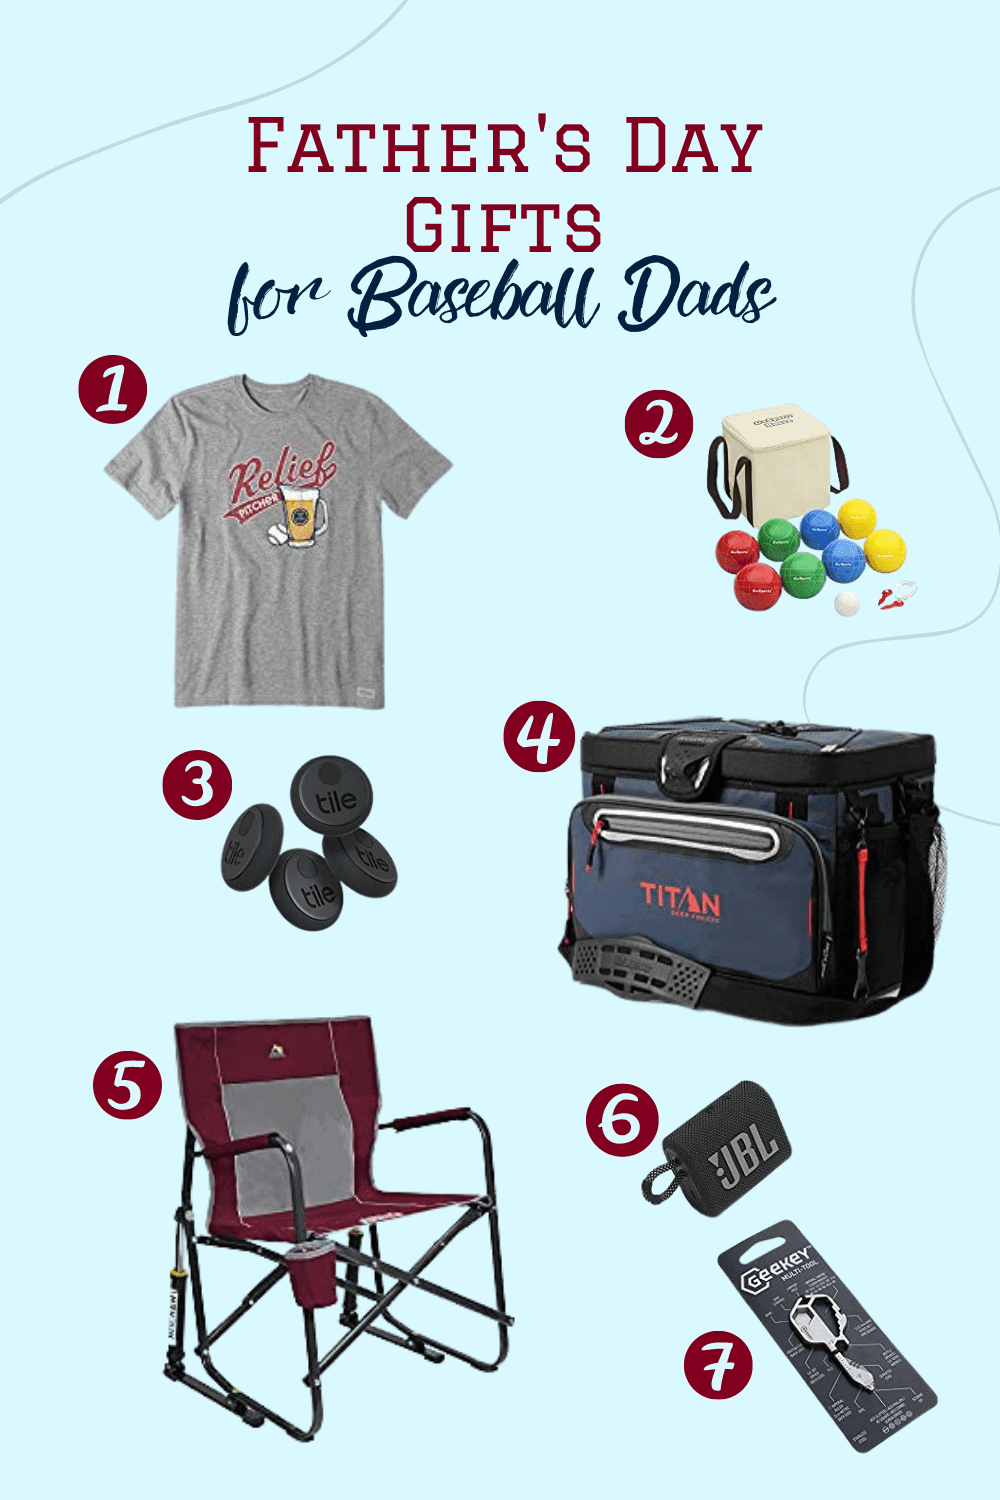 Father's Day Gift Ideas, baseball dad